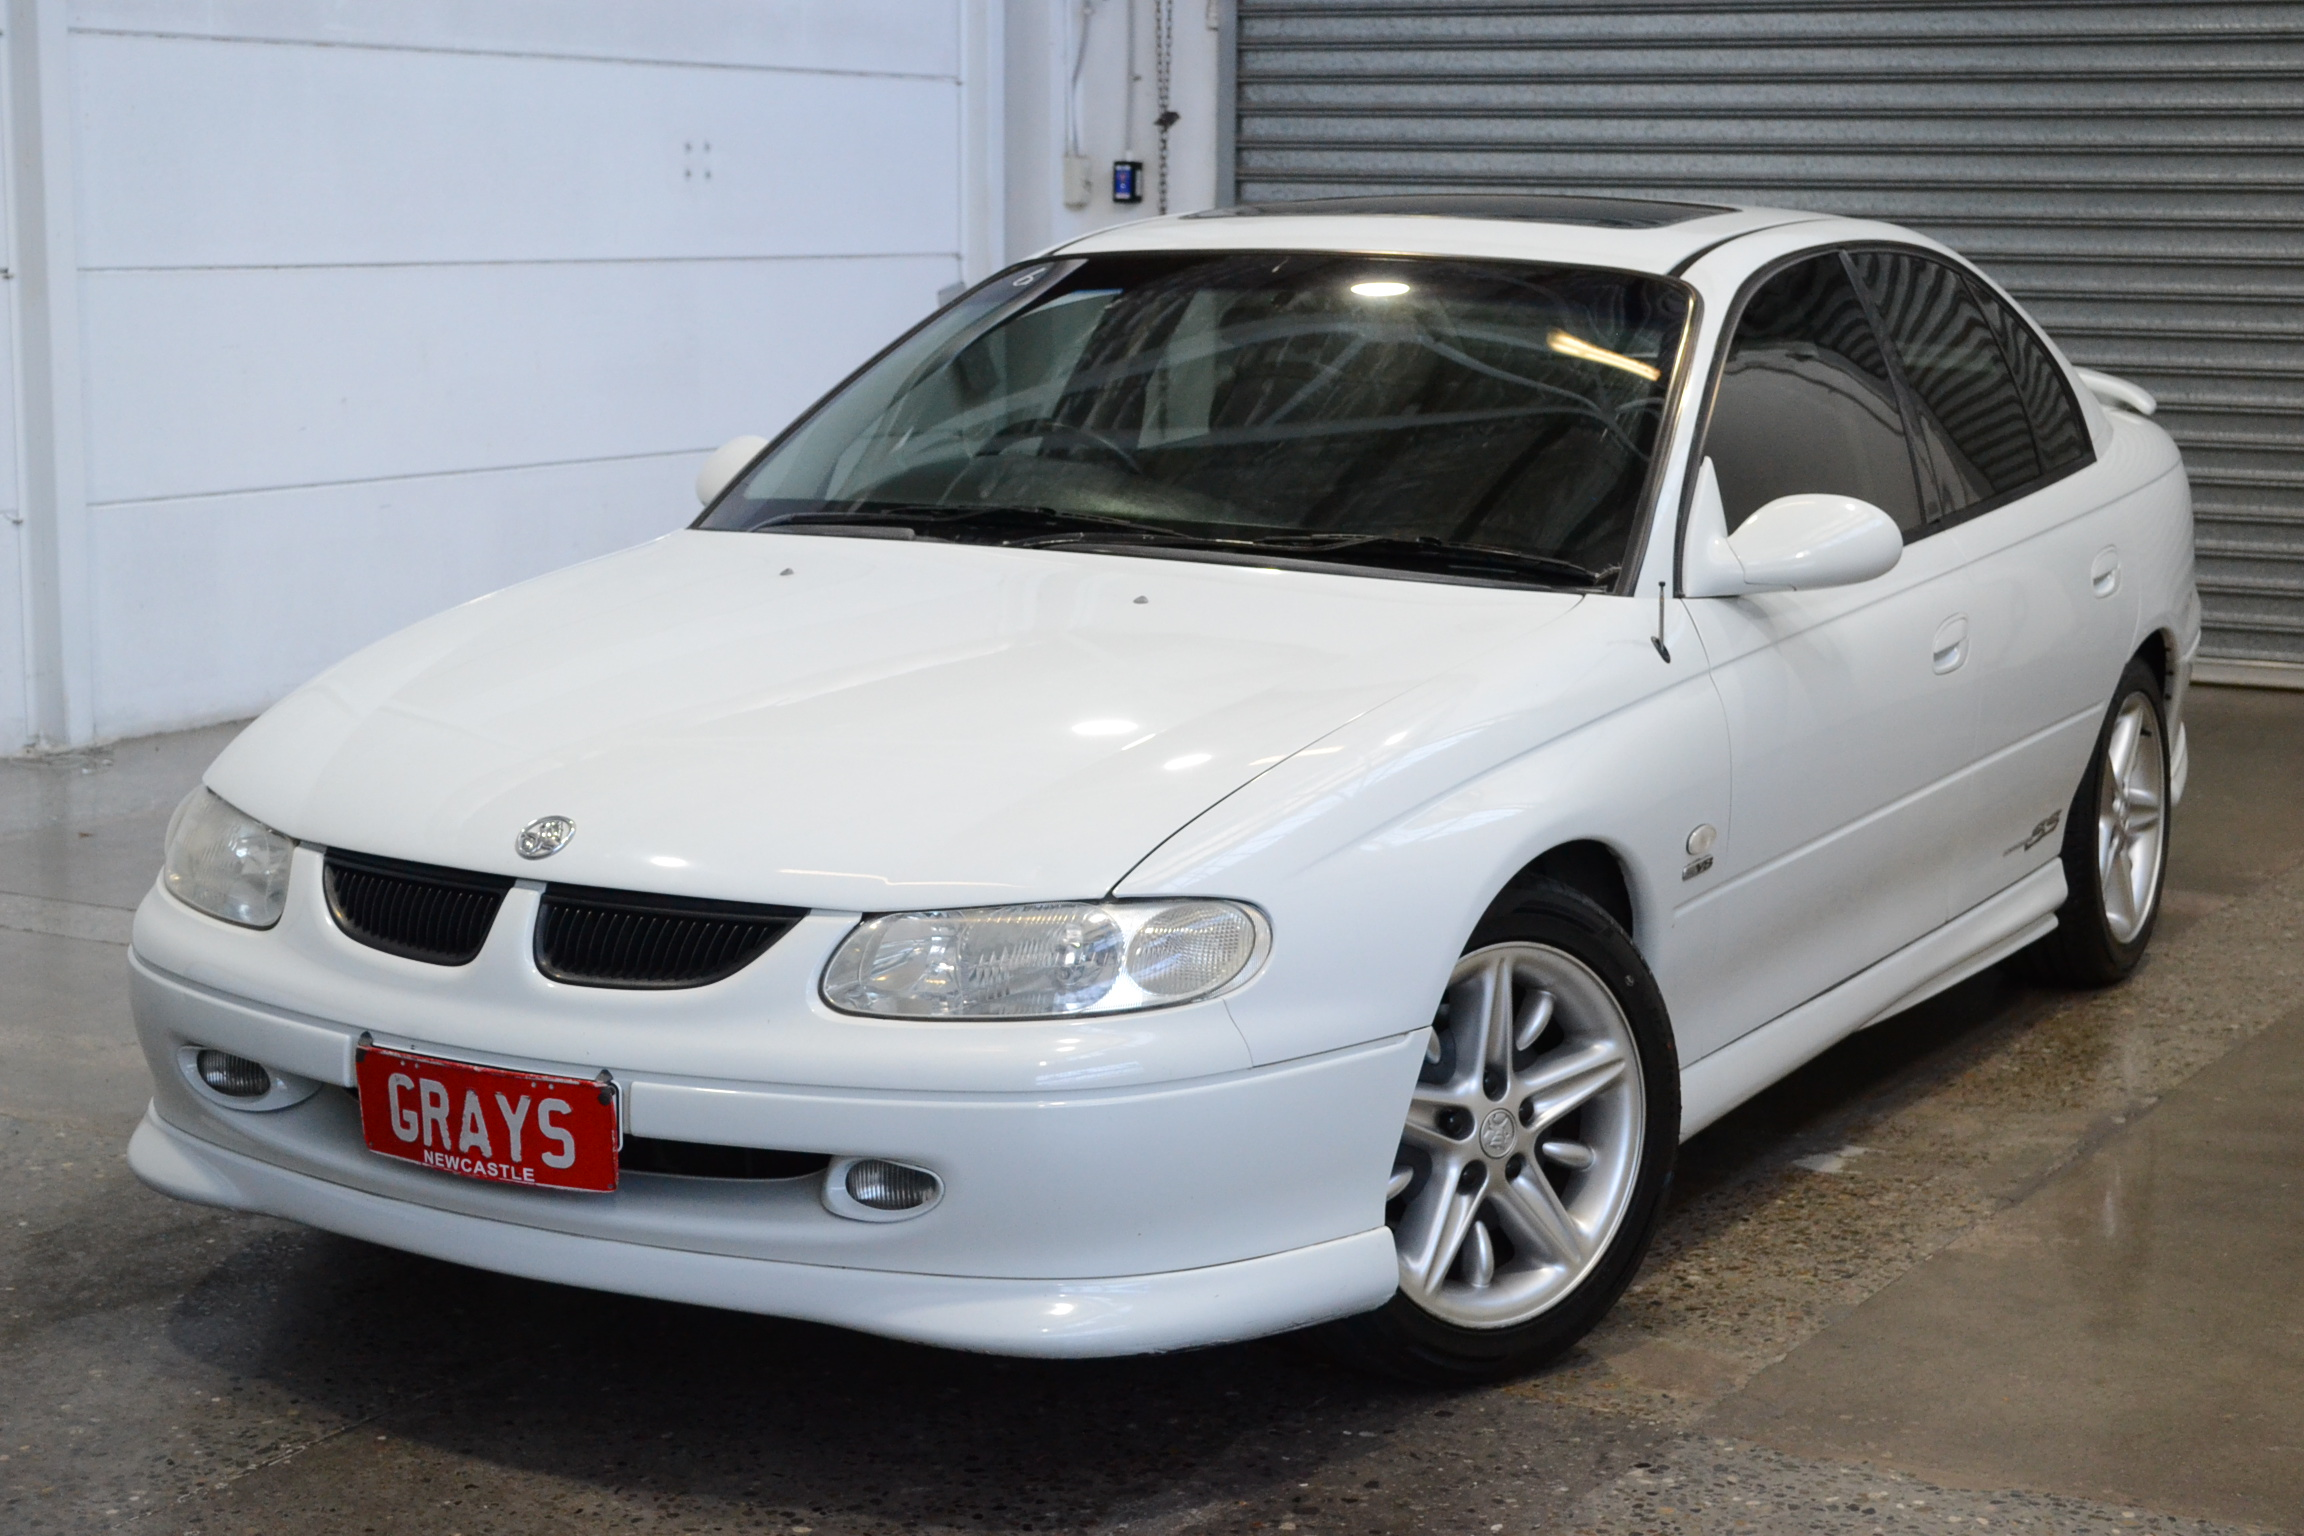 1999 Holden Commodore SS VT Manual Sedan